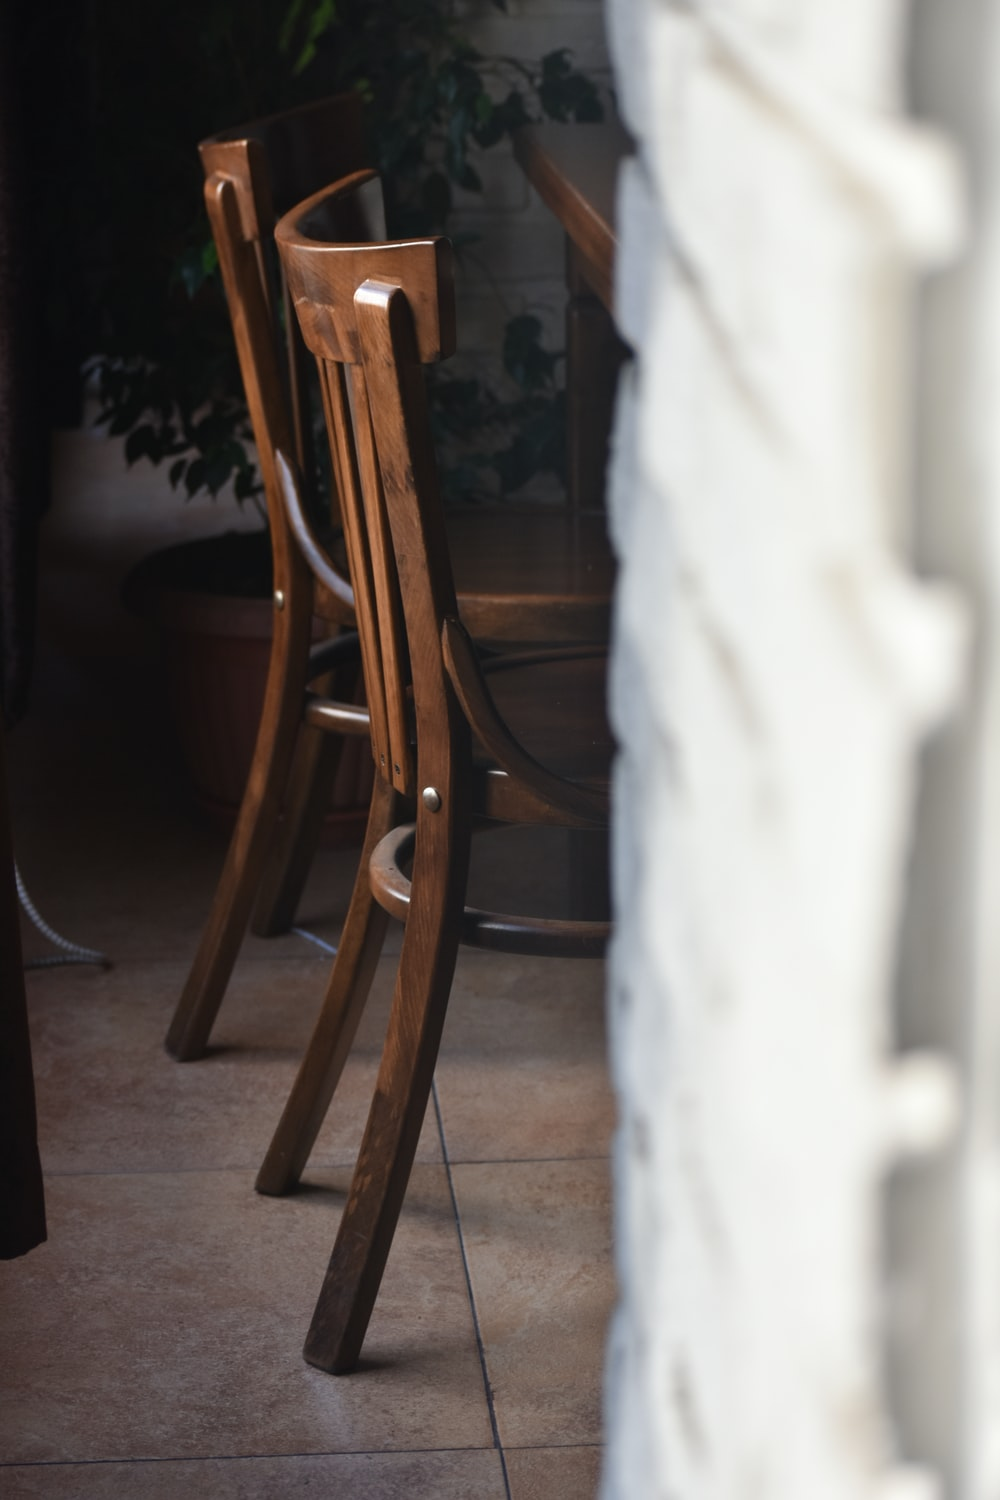 brown wooden chairs in front brown wooden table